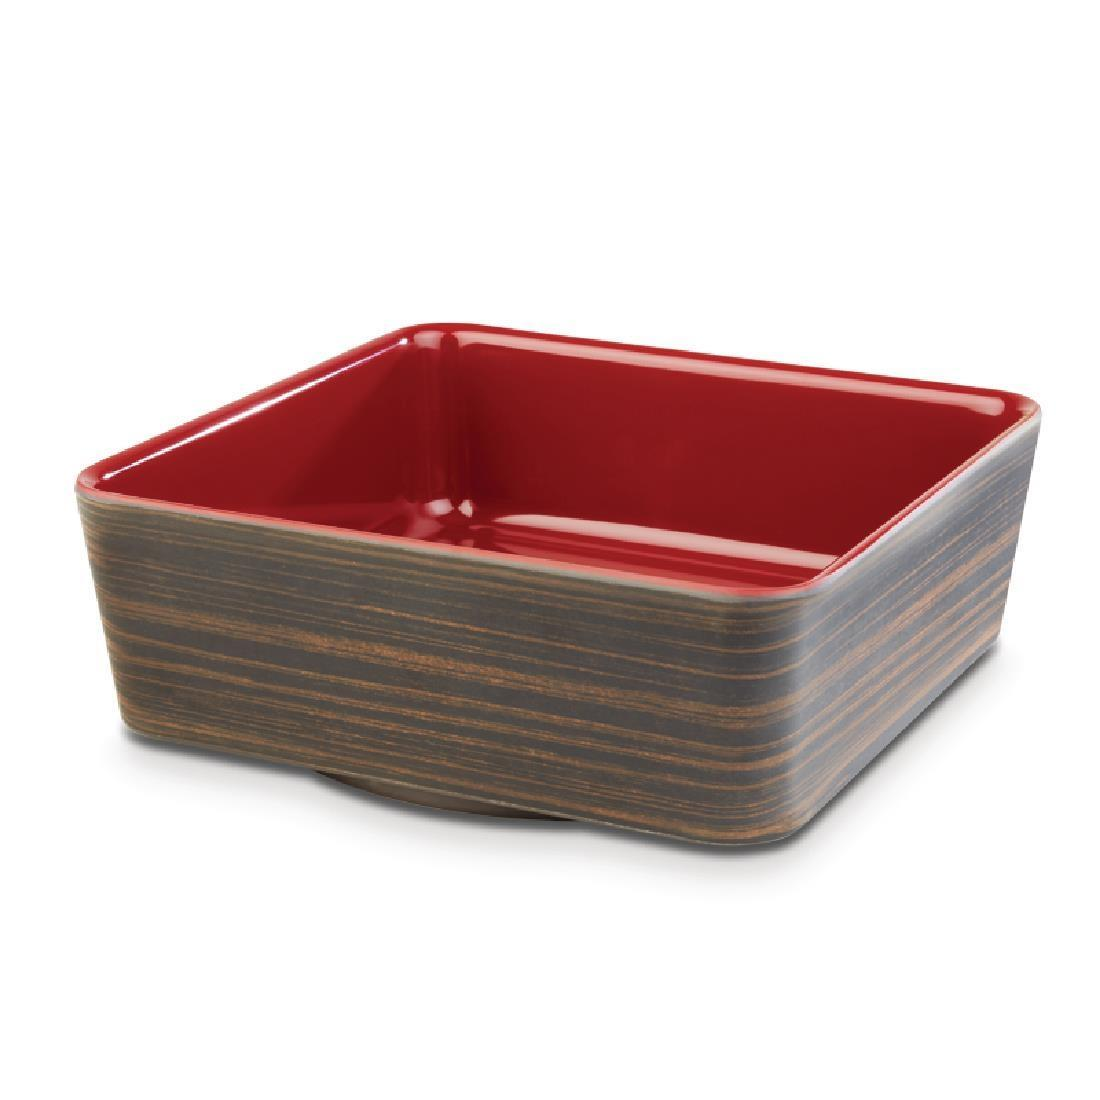 APS+ Melamine Square Bowl Oak and Red 1.5 Ltr - Each - CW693